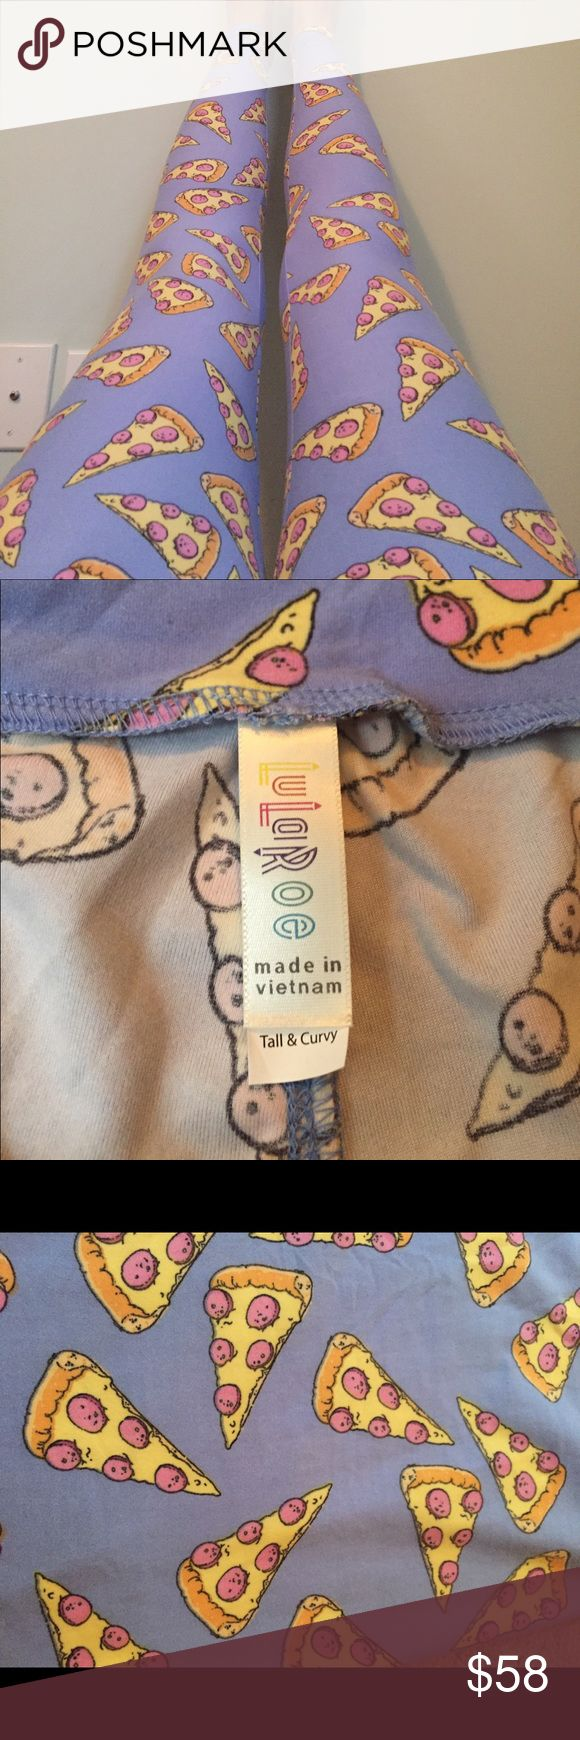 NEW TC Lularoe Pizza Legging These are NEW Lularoe TC pepperoni pizza leggings. Blue background with yellow pie slices. So cute, make an offer! LuLaRoe Other